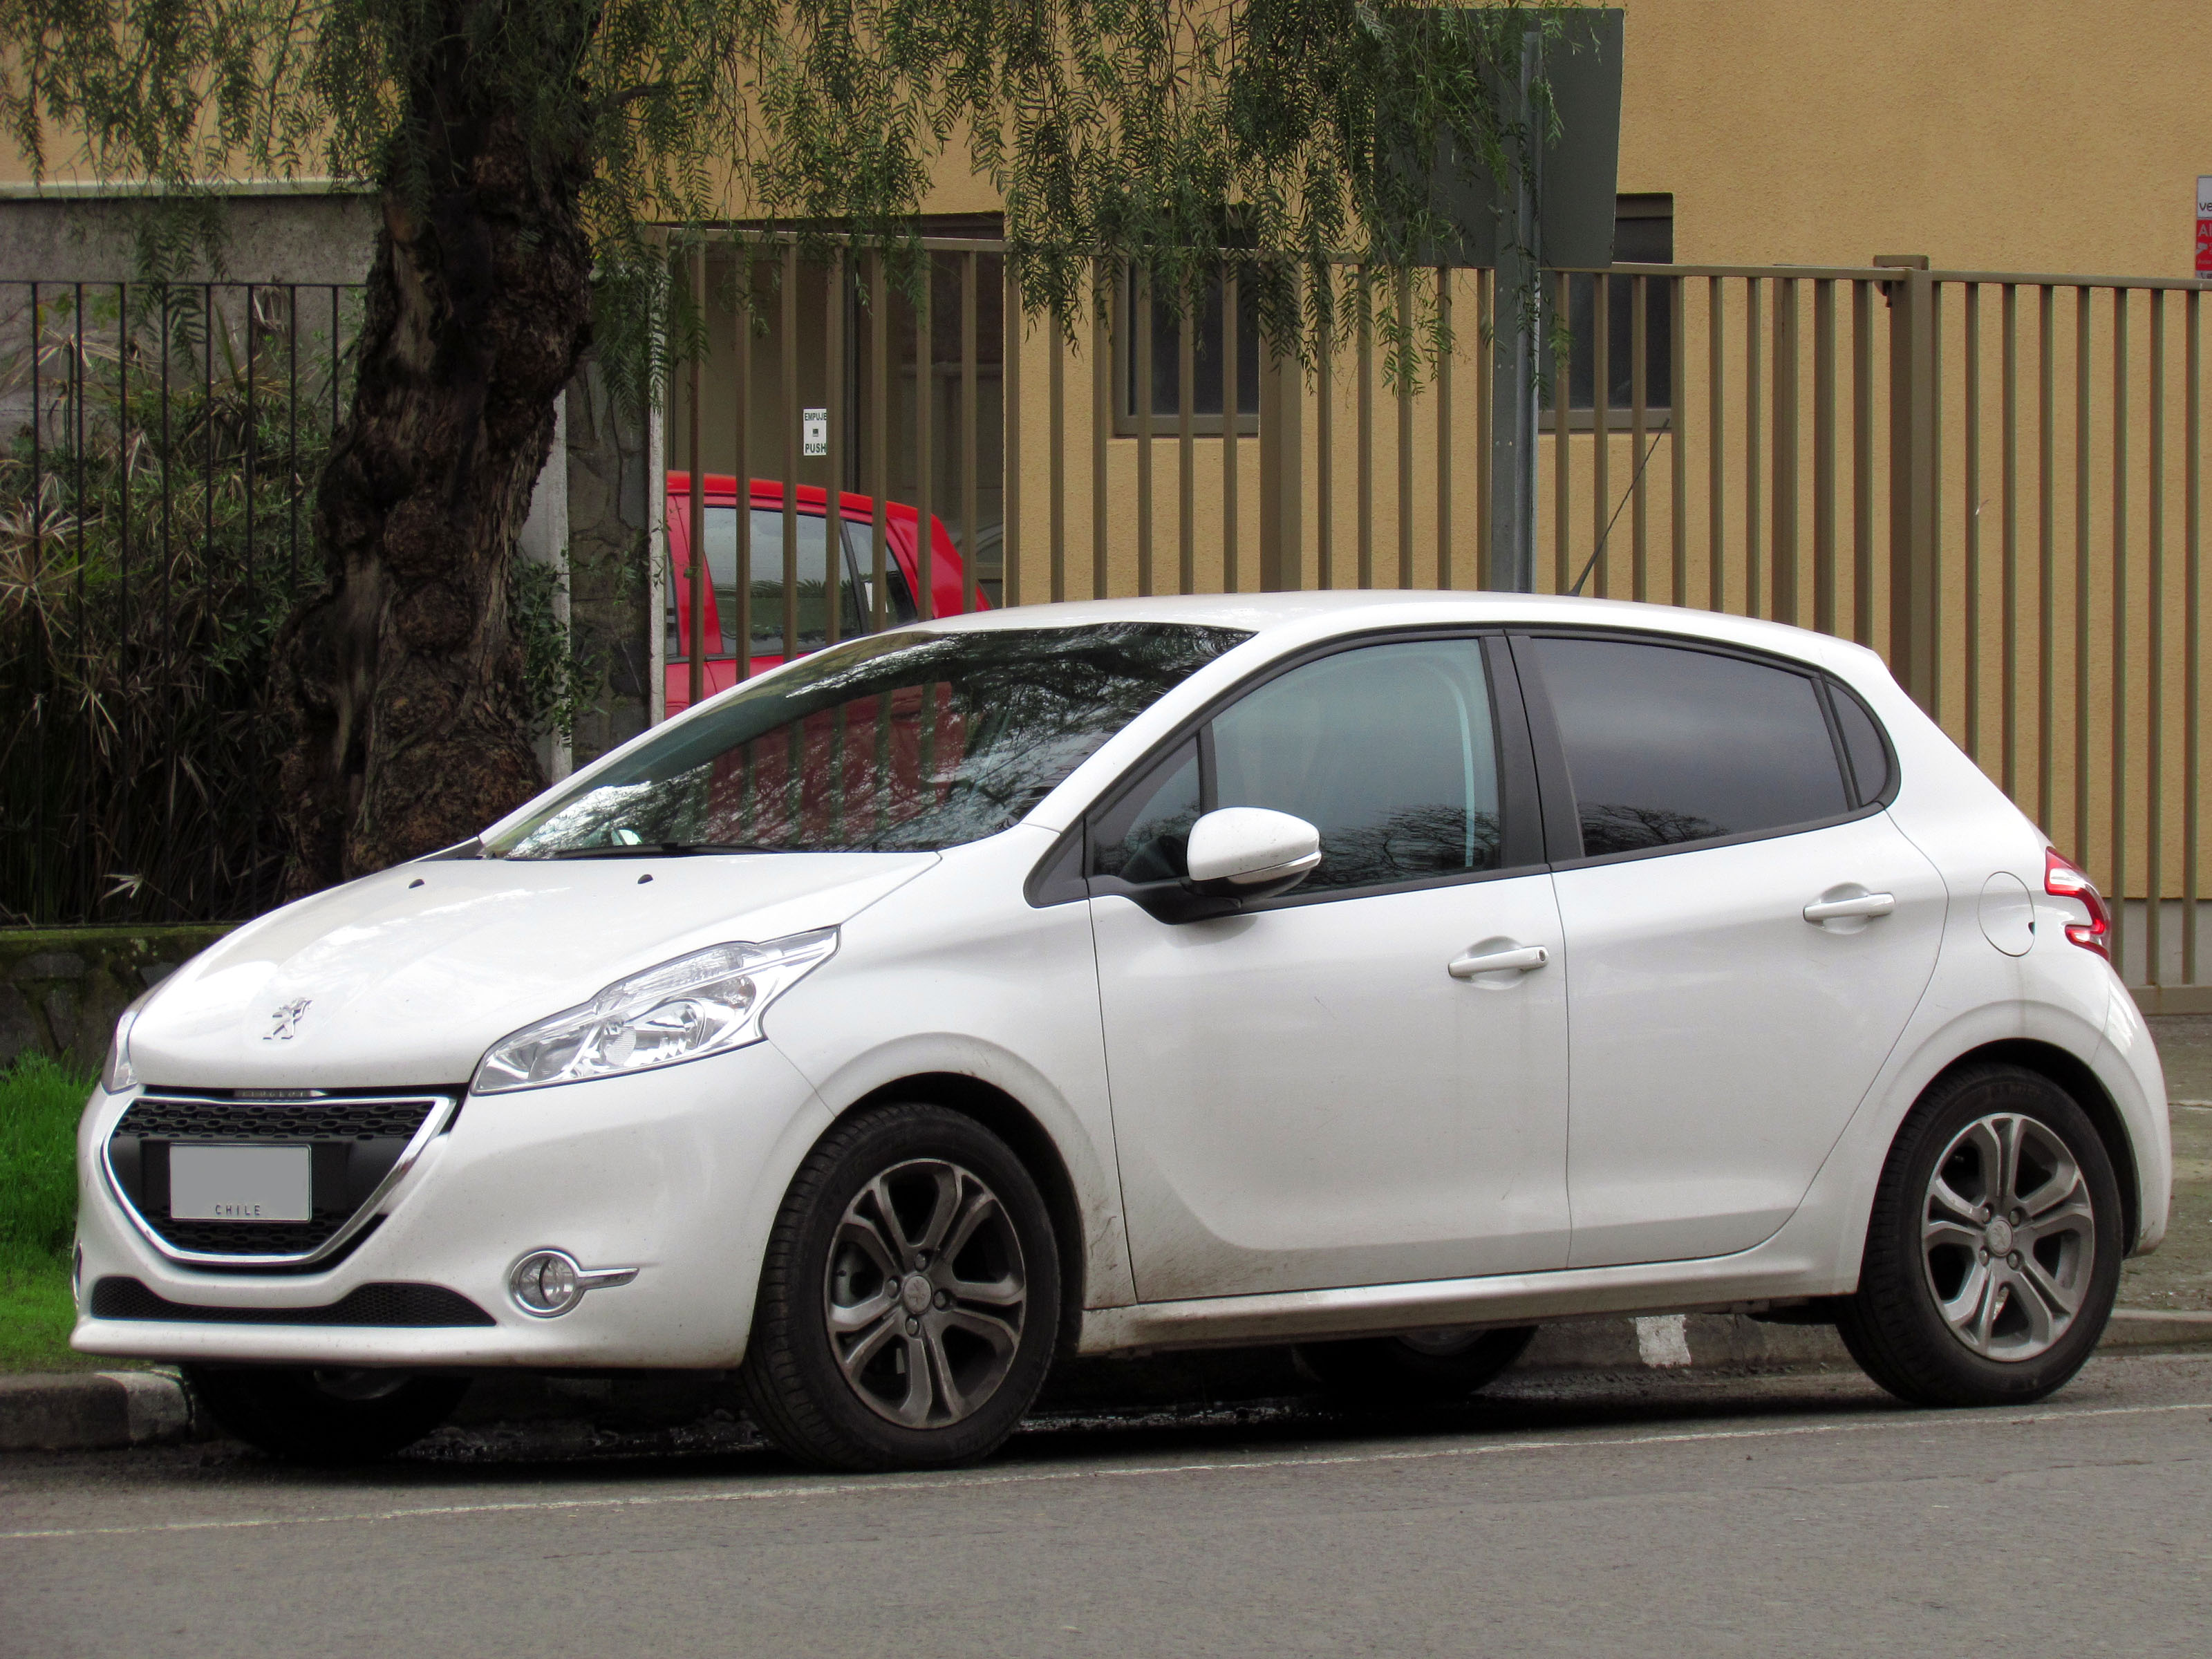 file peugeot 208 1 4 hdi active 2013 10581282785 jpg wikimedia commons